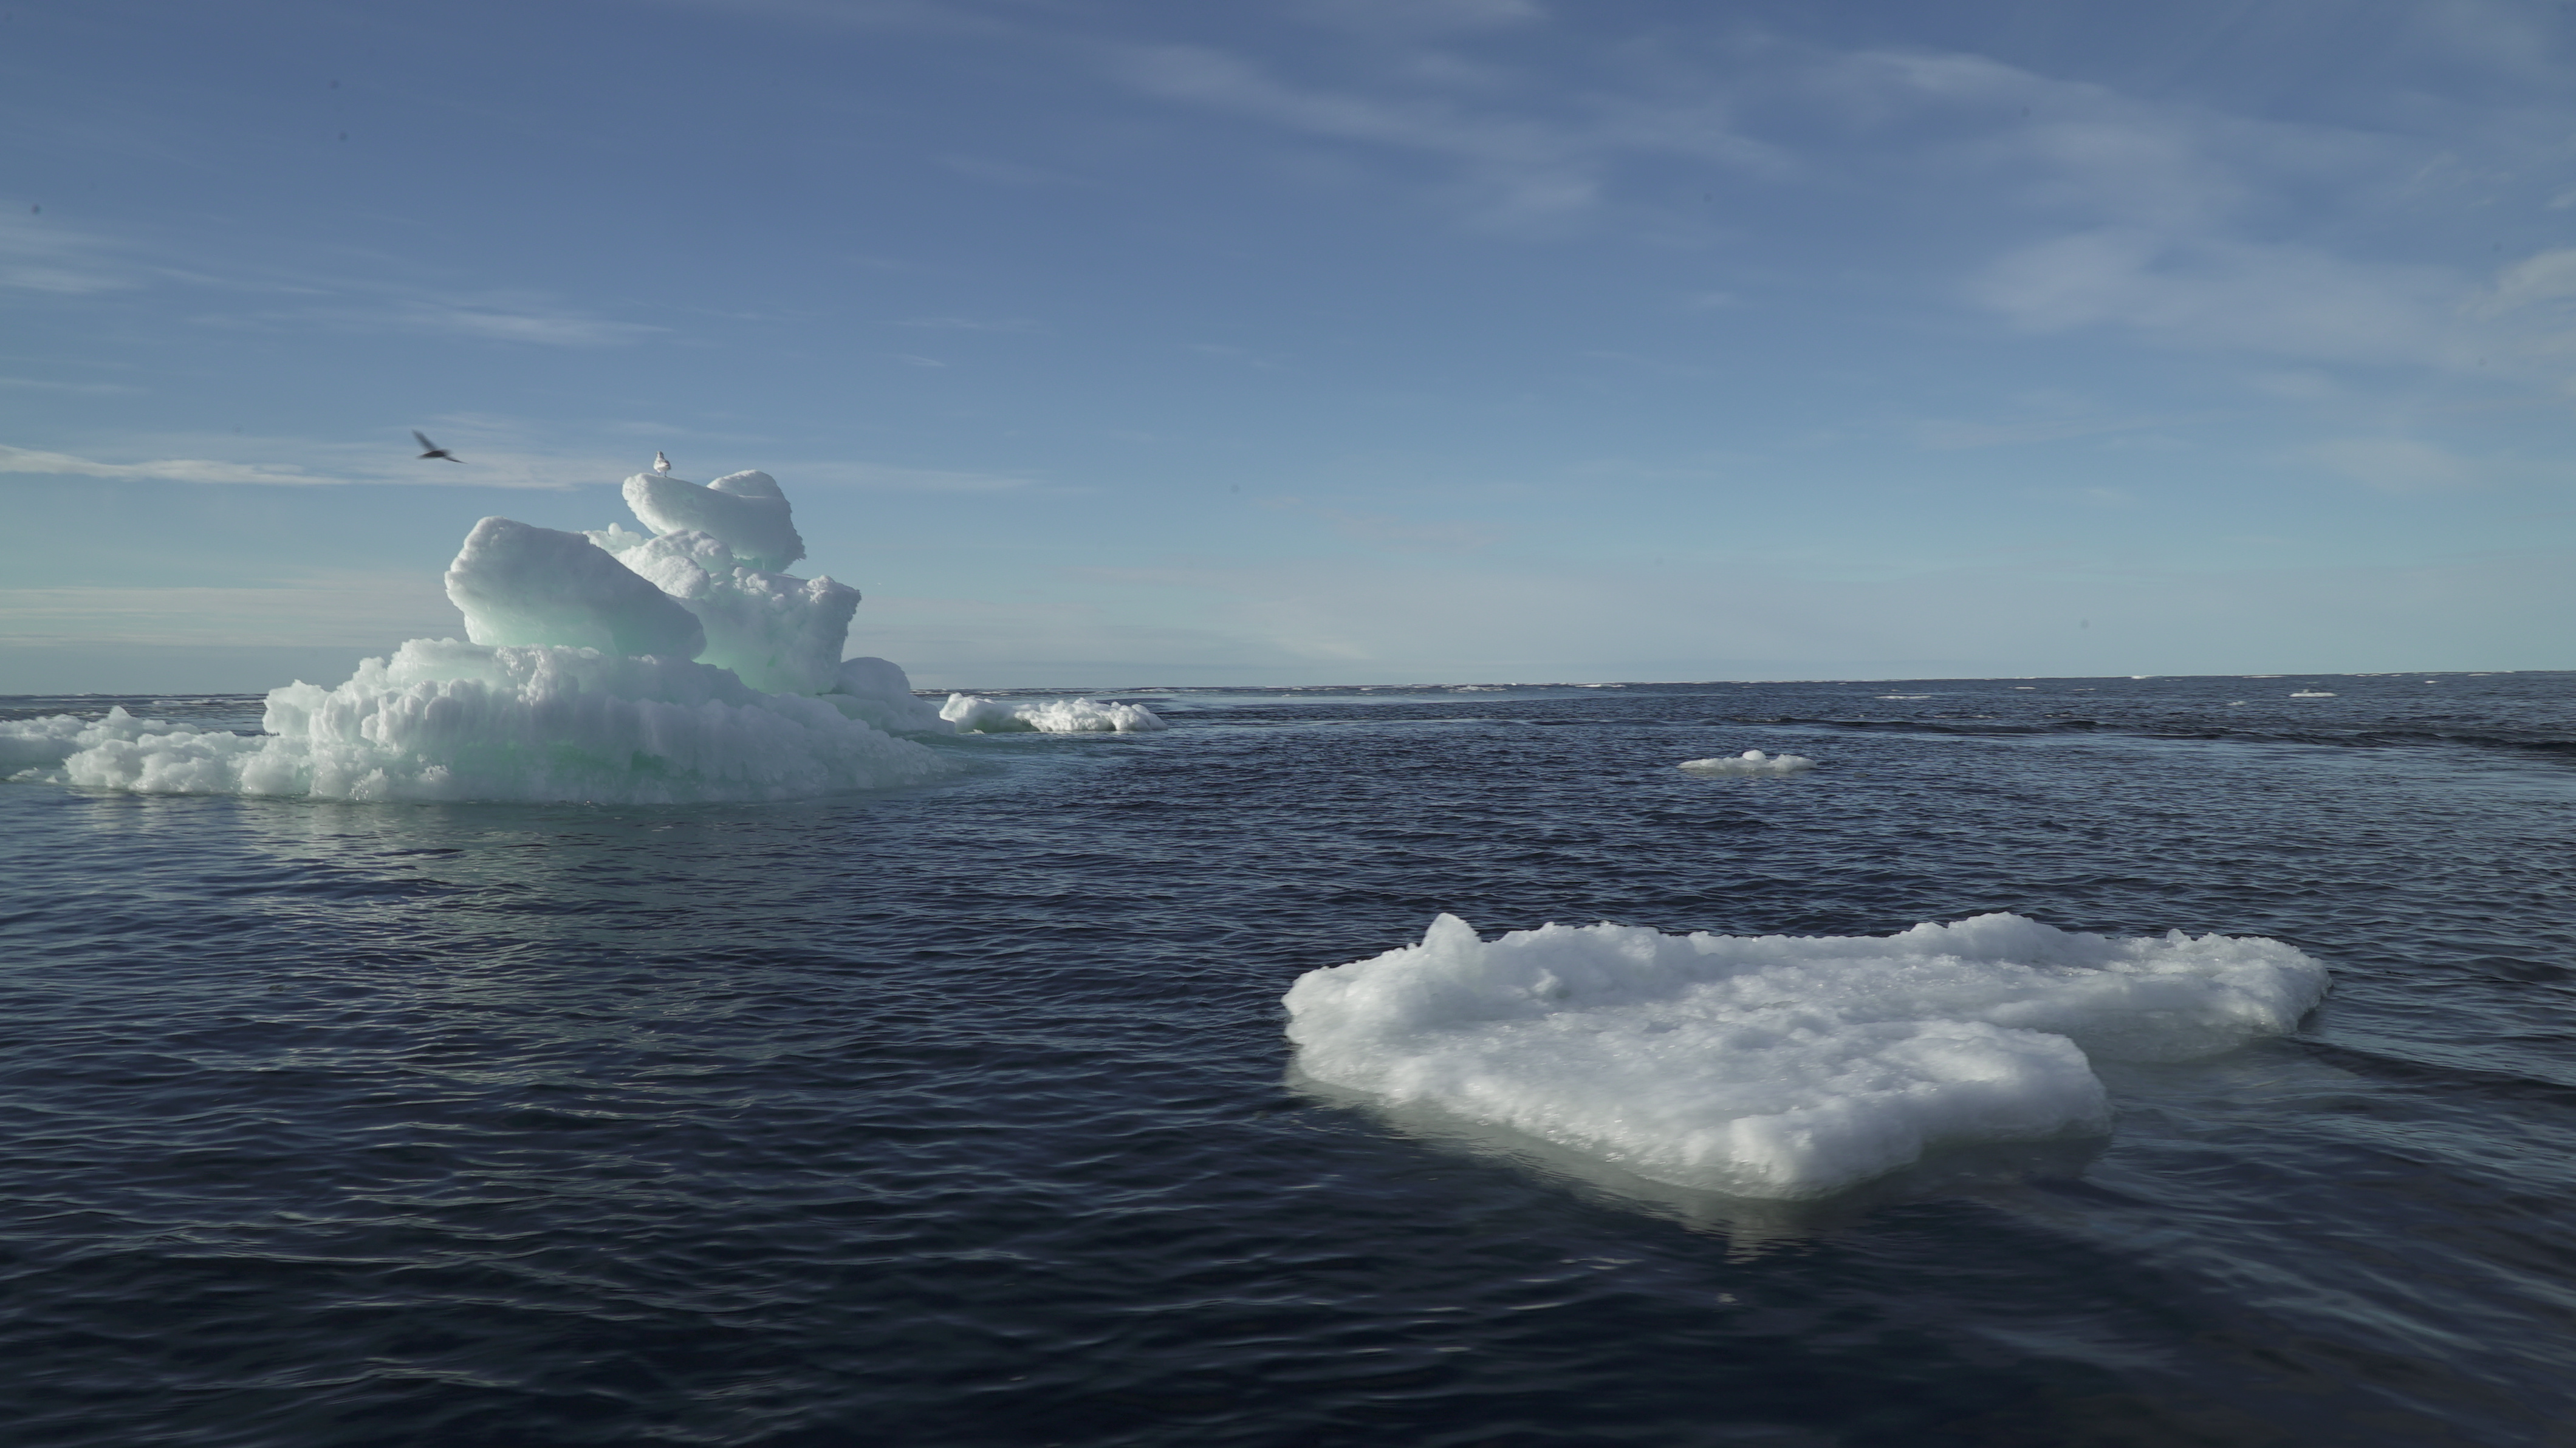 Floating ice is seen during the expedition of the The Greenpeace's Arctic Sunrise ship at the Arctic Ocean, September 14, 2020. REUTERS/Natalie Thomas